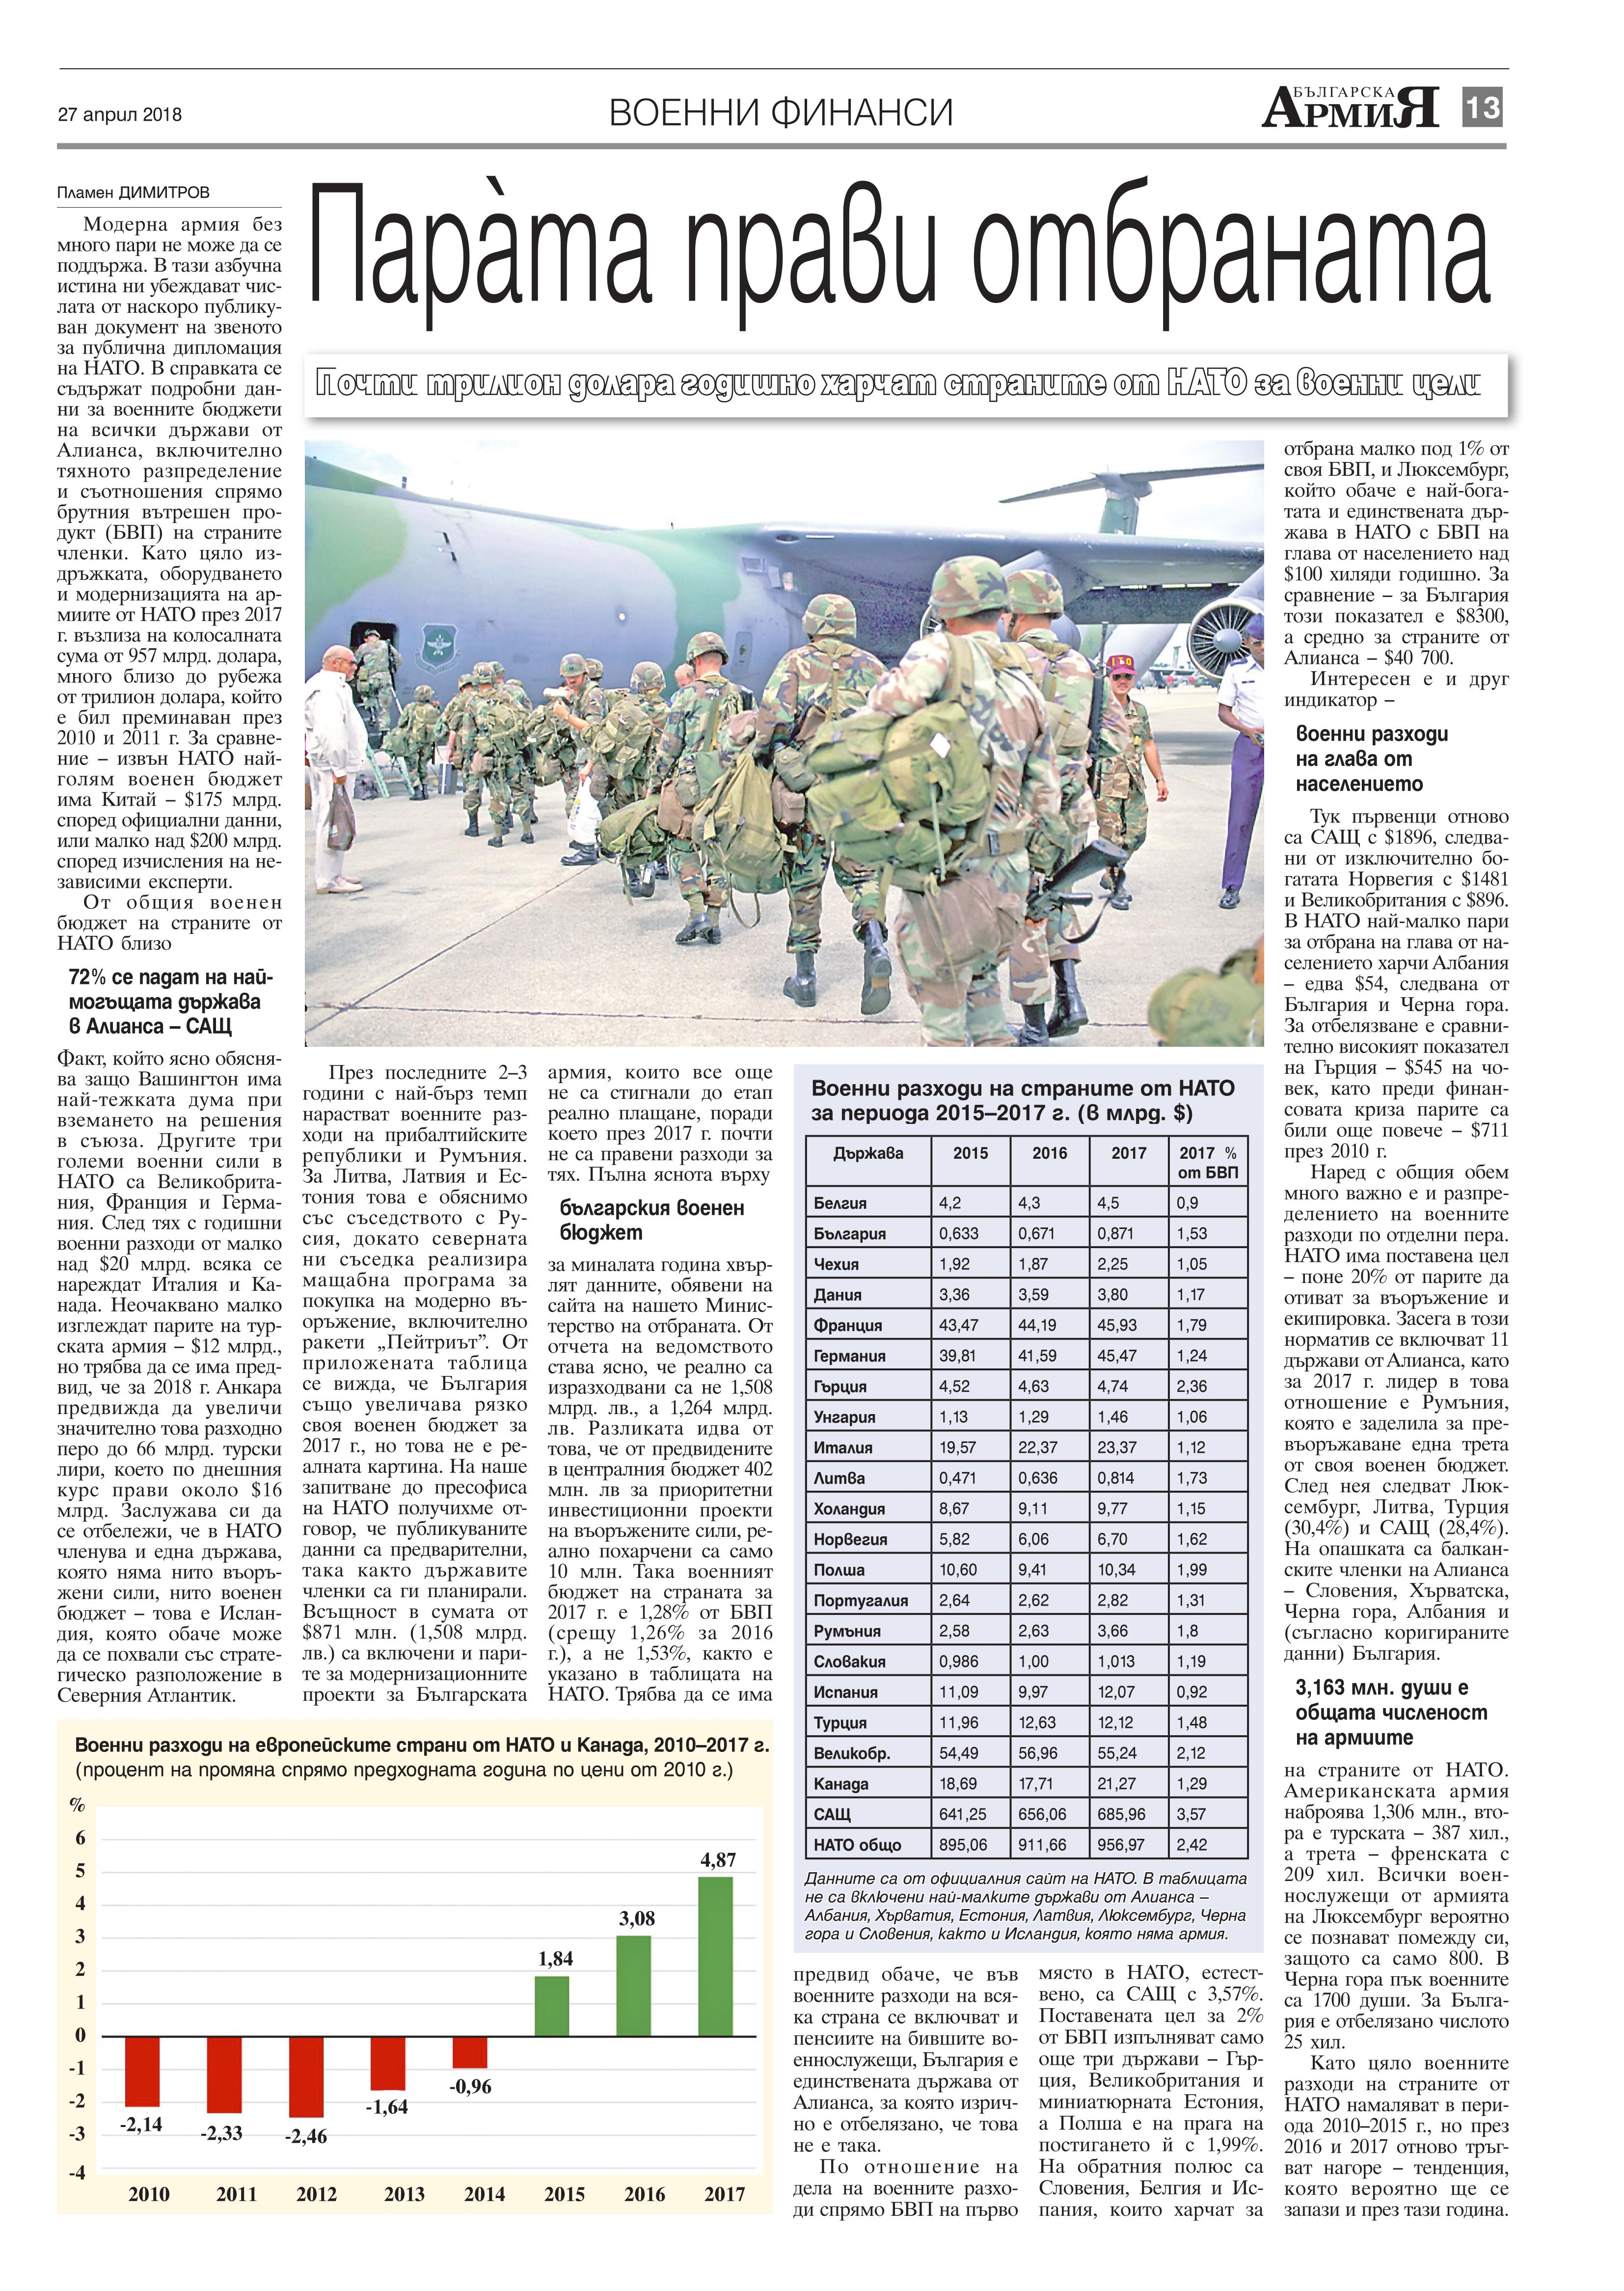 http://armymedia.bg/wp-content/uploads/2015/06/13.page1_-49.jpg